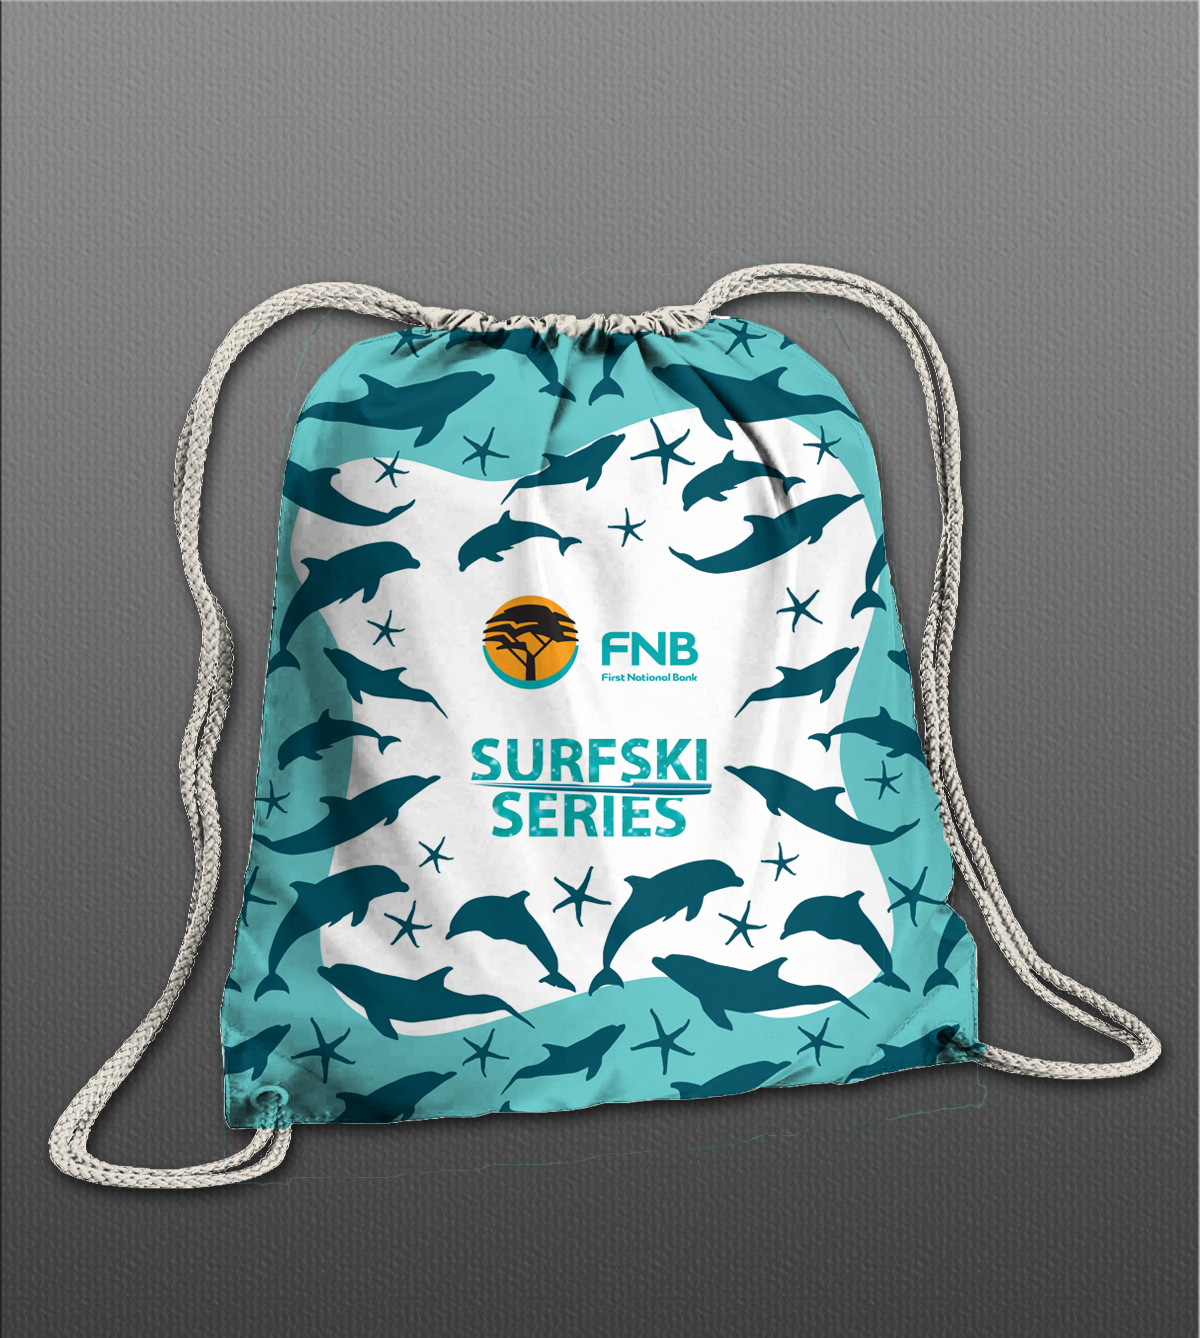 SURFSKI SERIES square bag 9